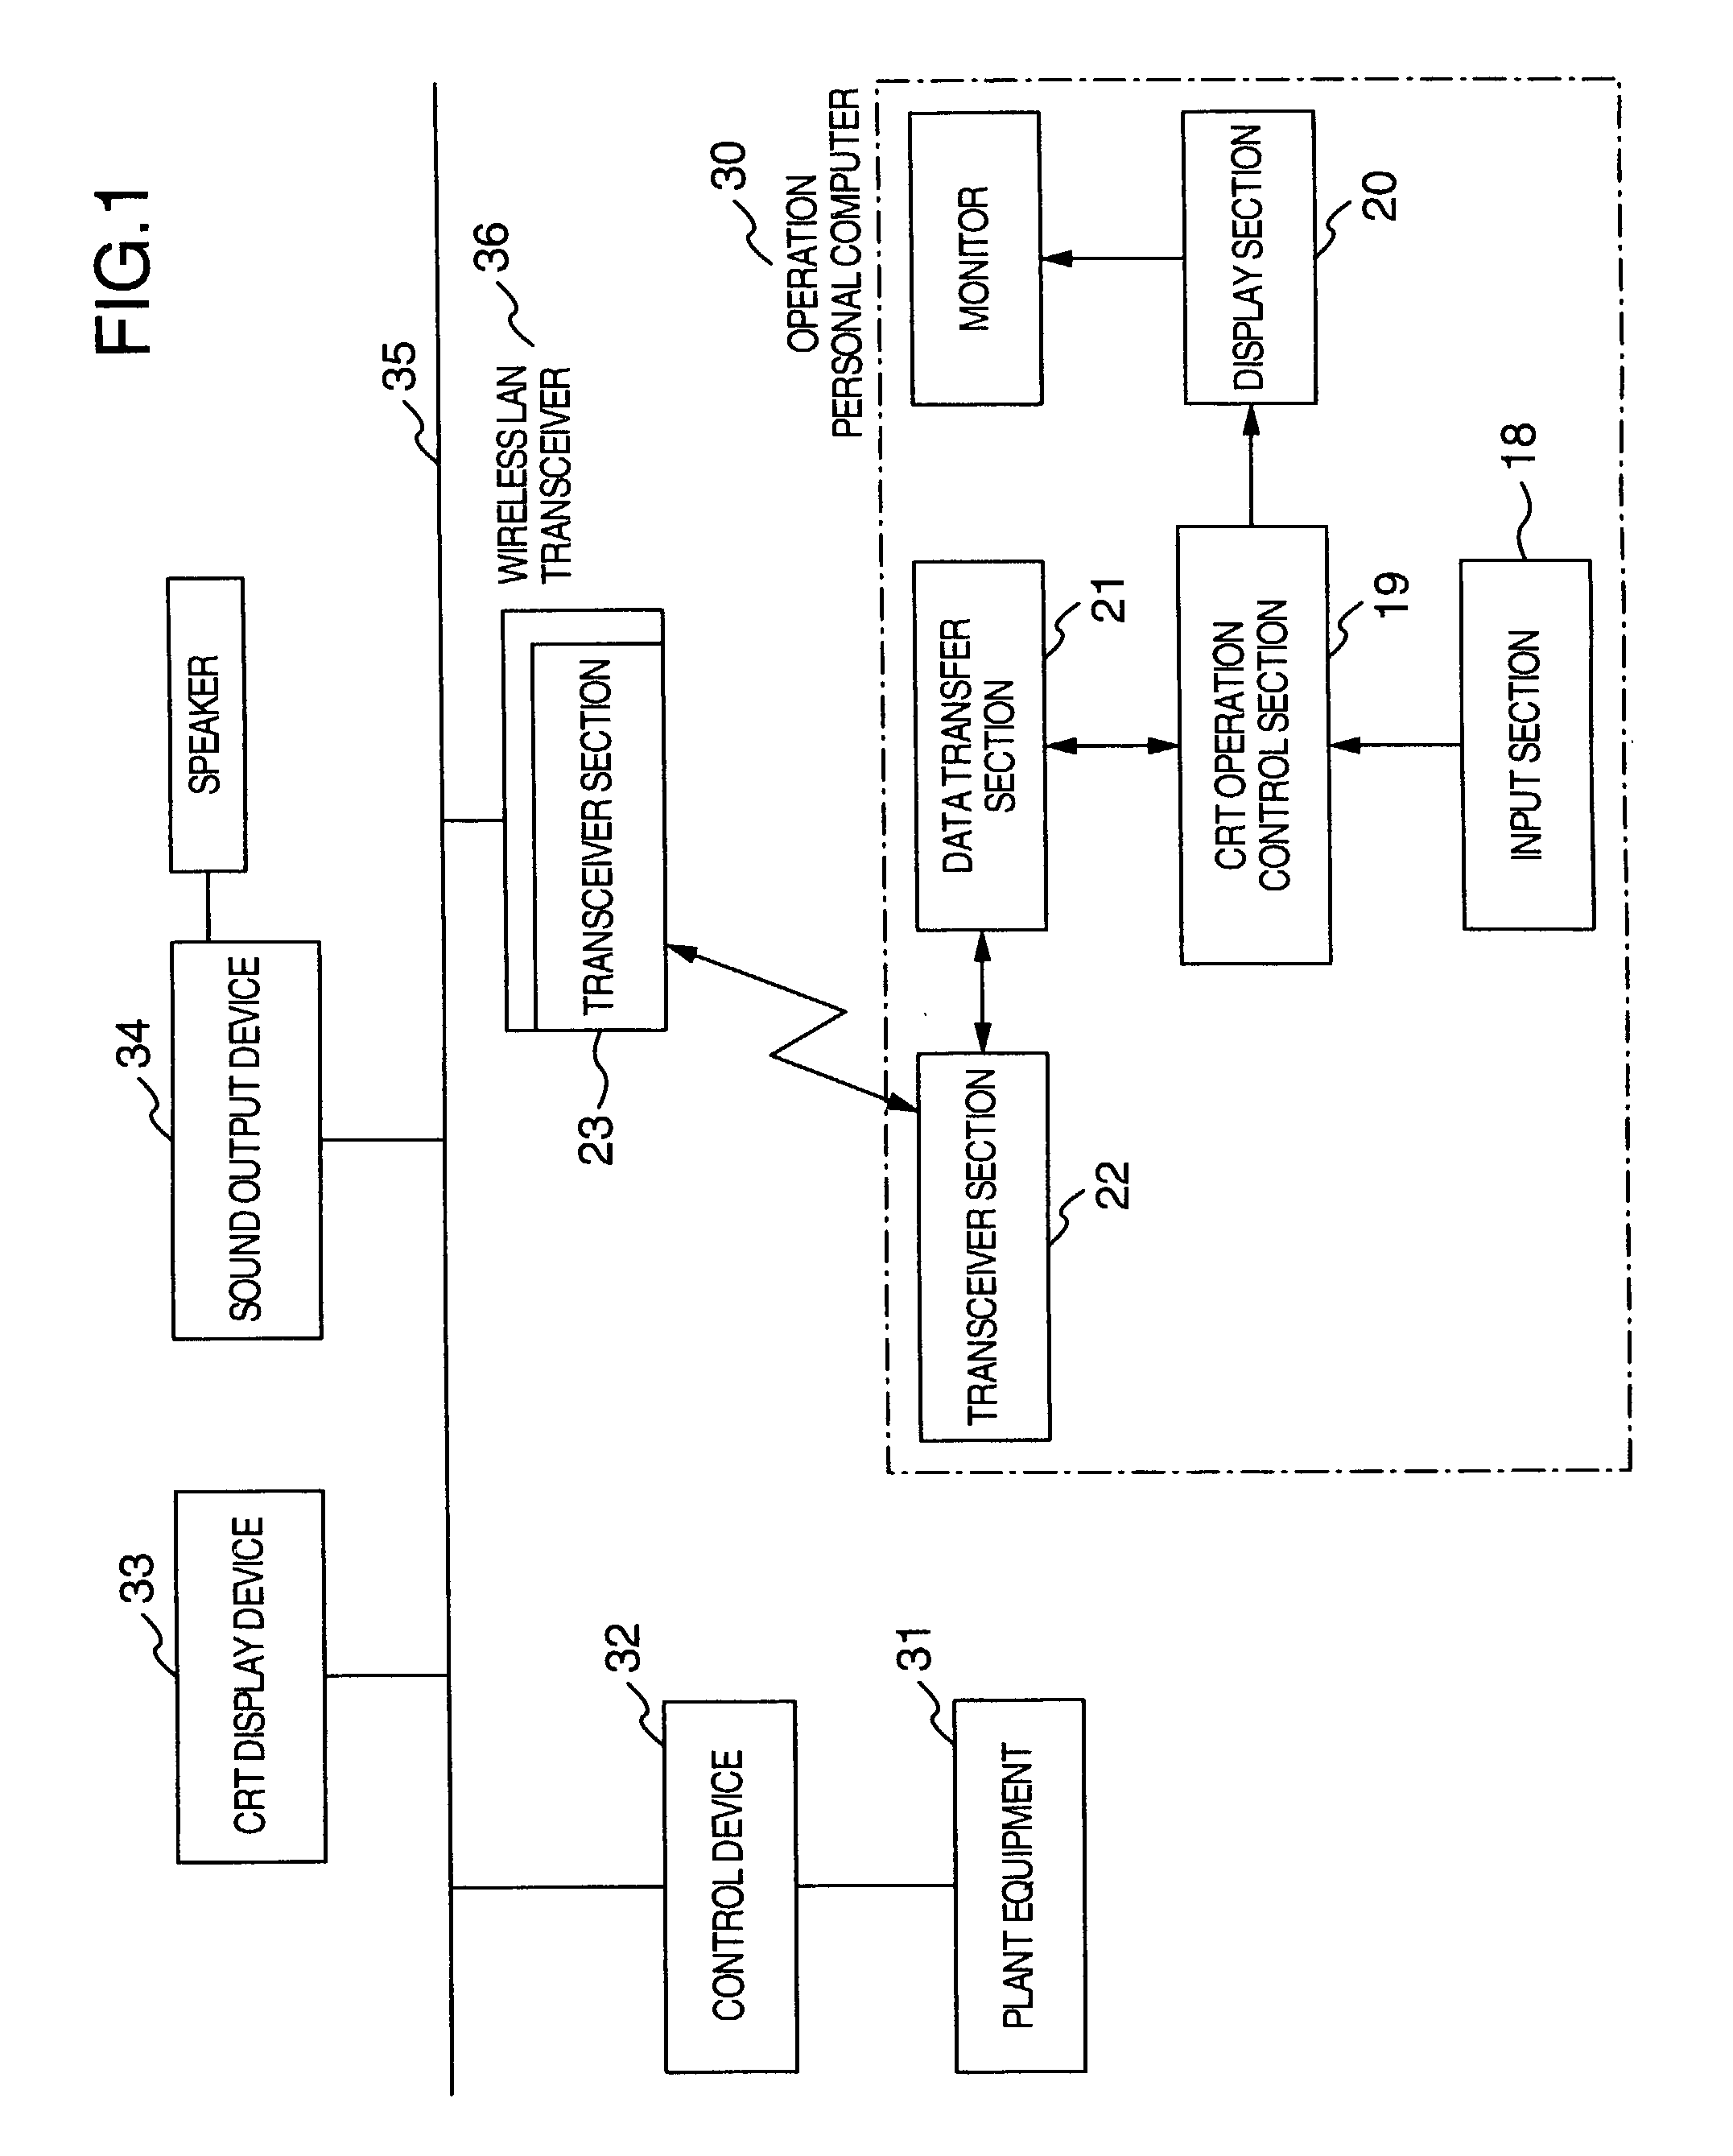 Patente Us20030139820 Plant Operating Apparatus And Method Crt Screen Schematic Patent Drawing